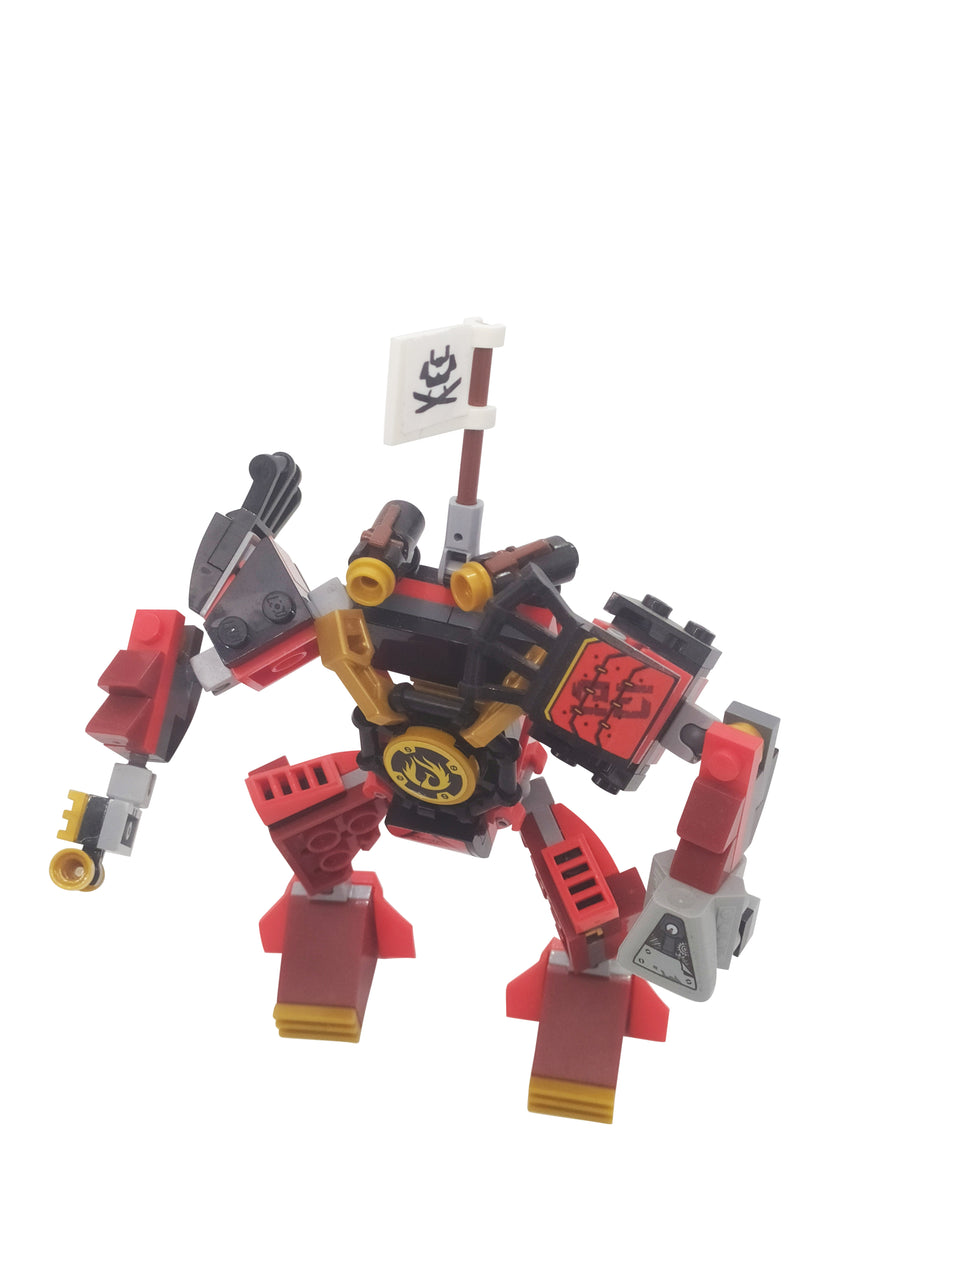 special set of Lego Ninjago Red Robot Suit